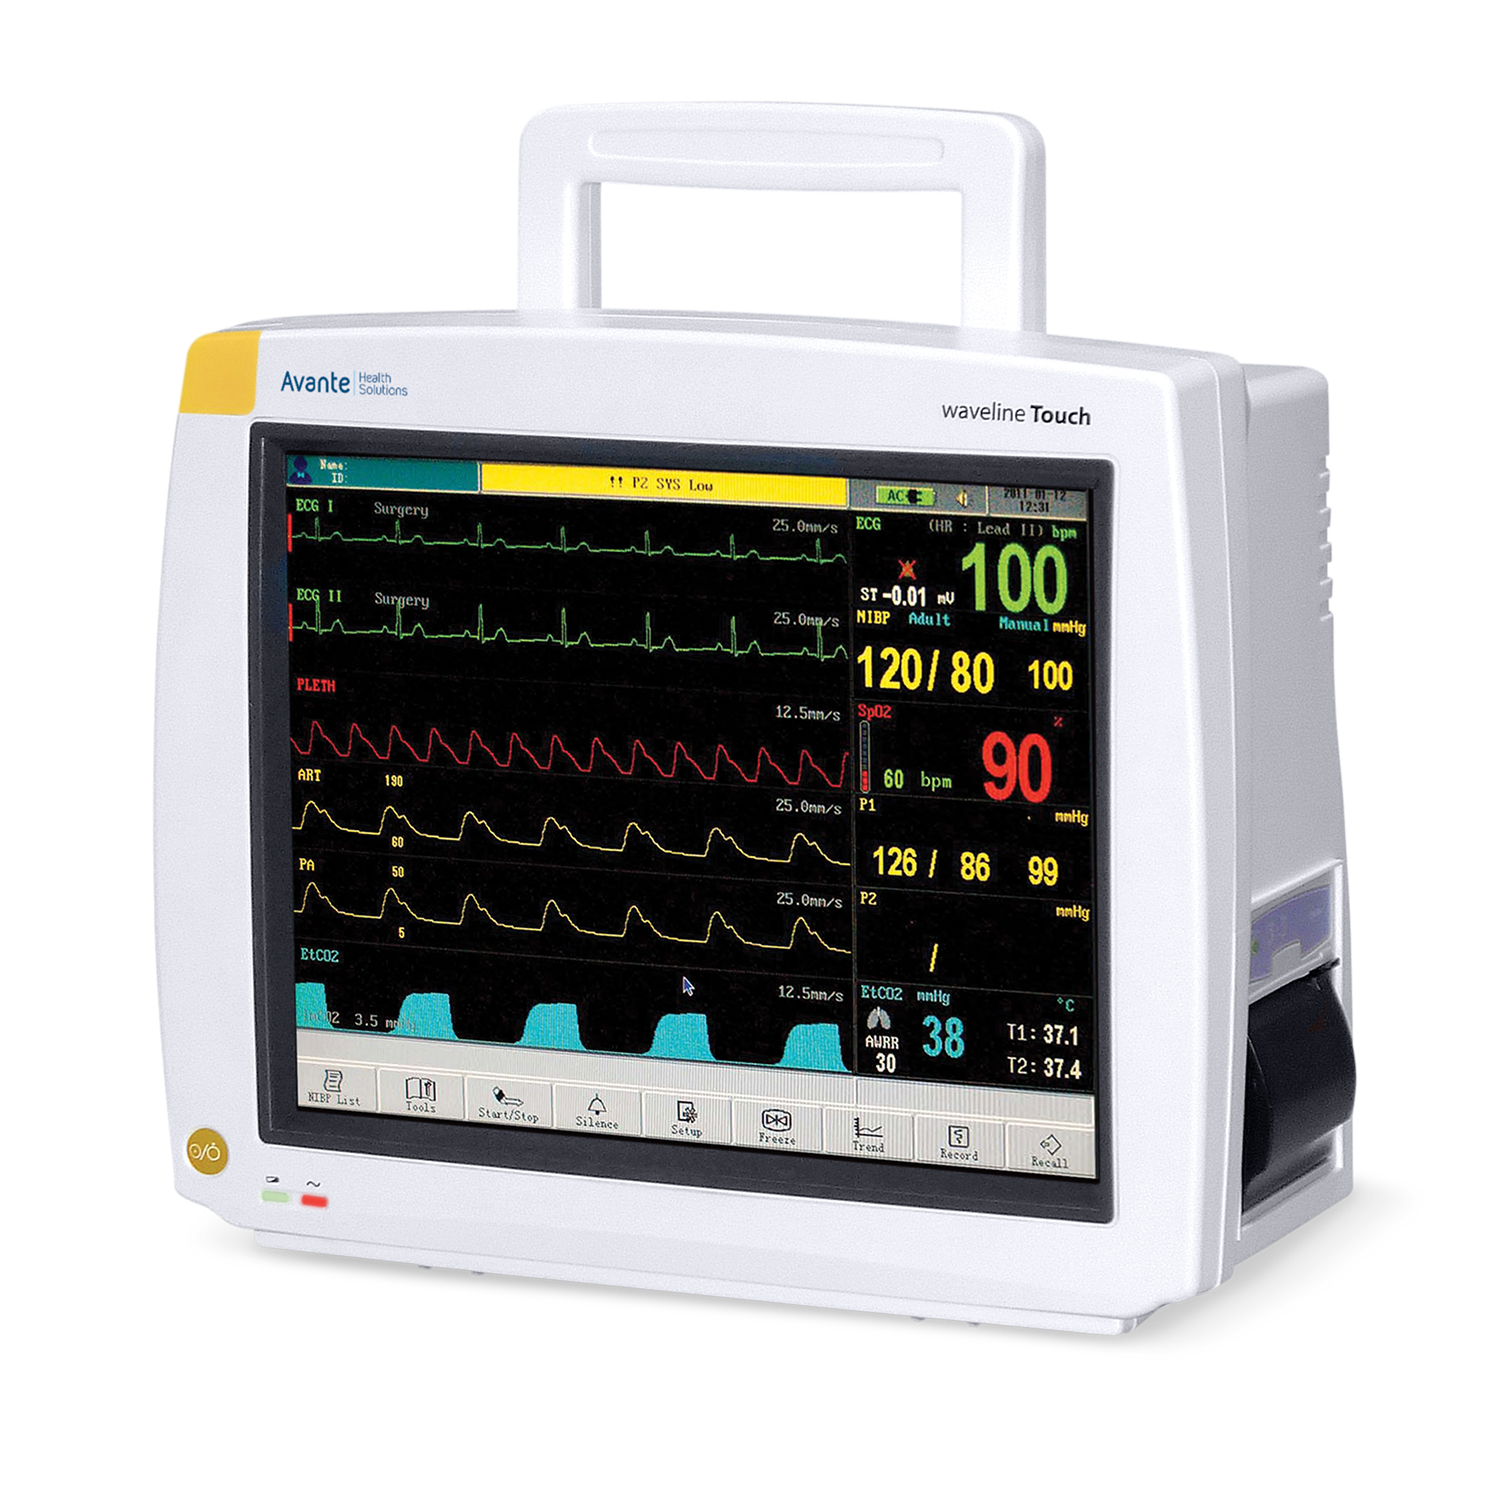 Avante Waveline Touch Patient Monitor with Touch-Screen